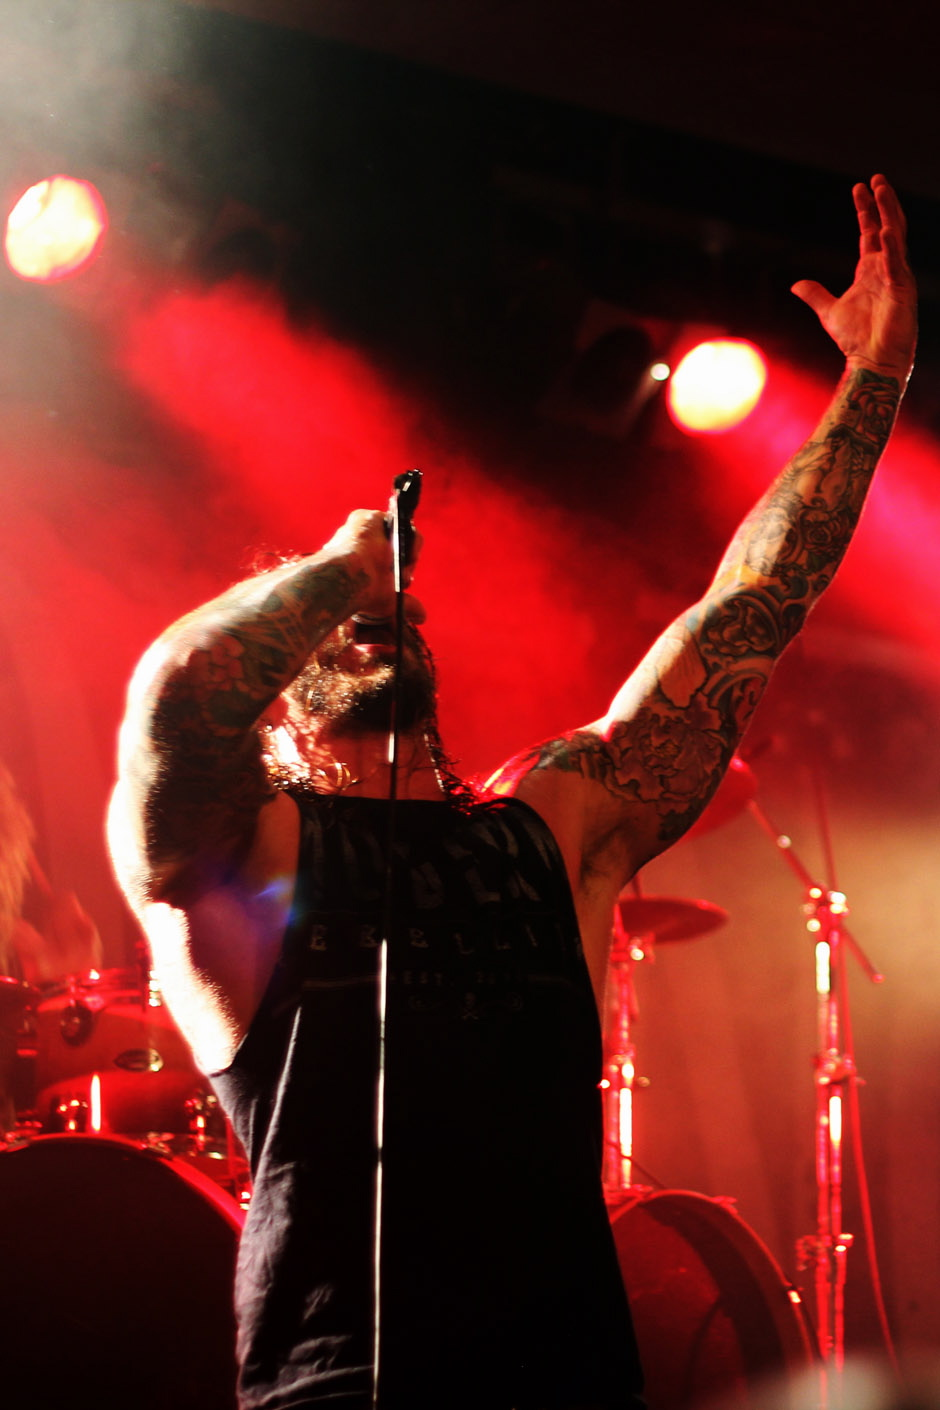 As I Lay Dying live, 06.06.2012 in Karlsruhe